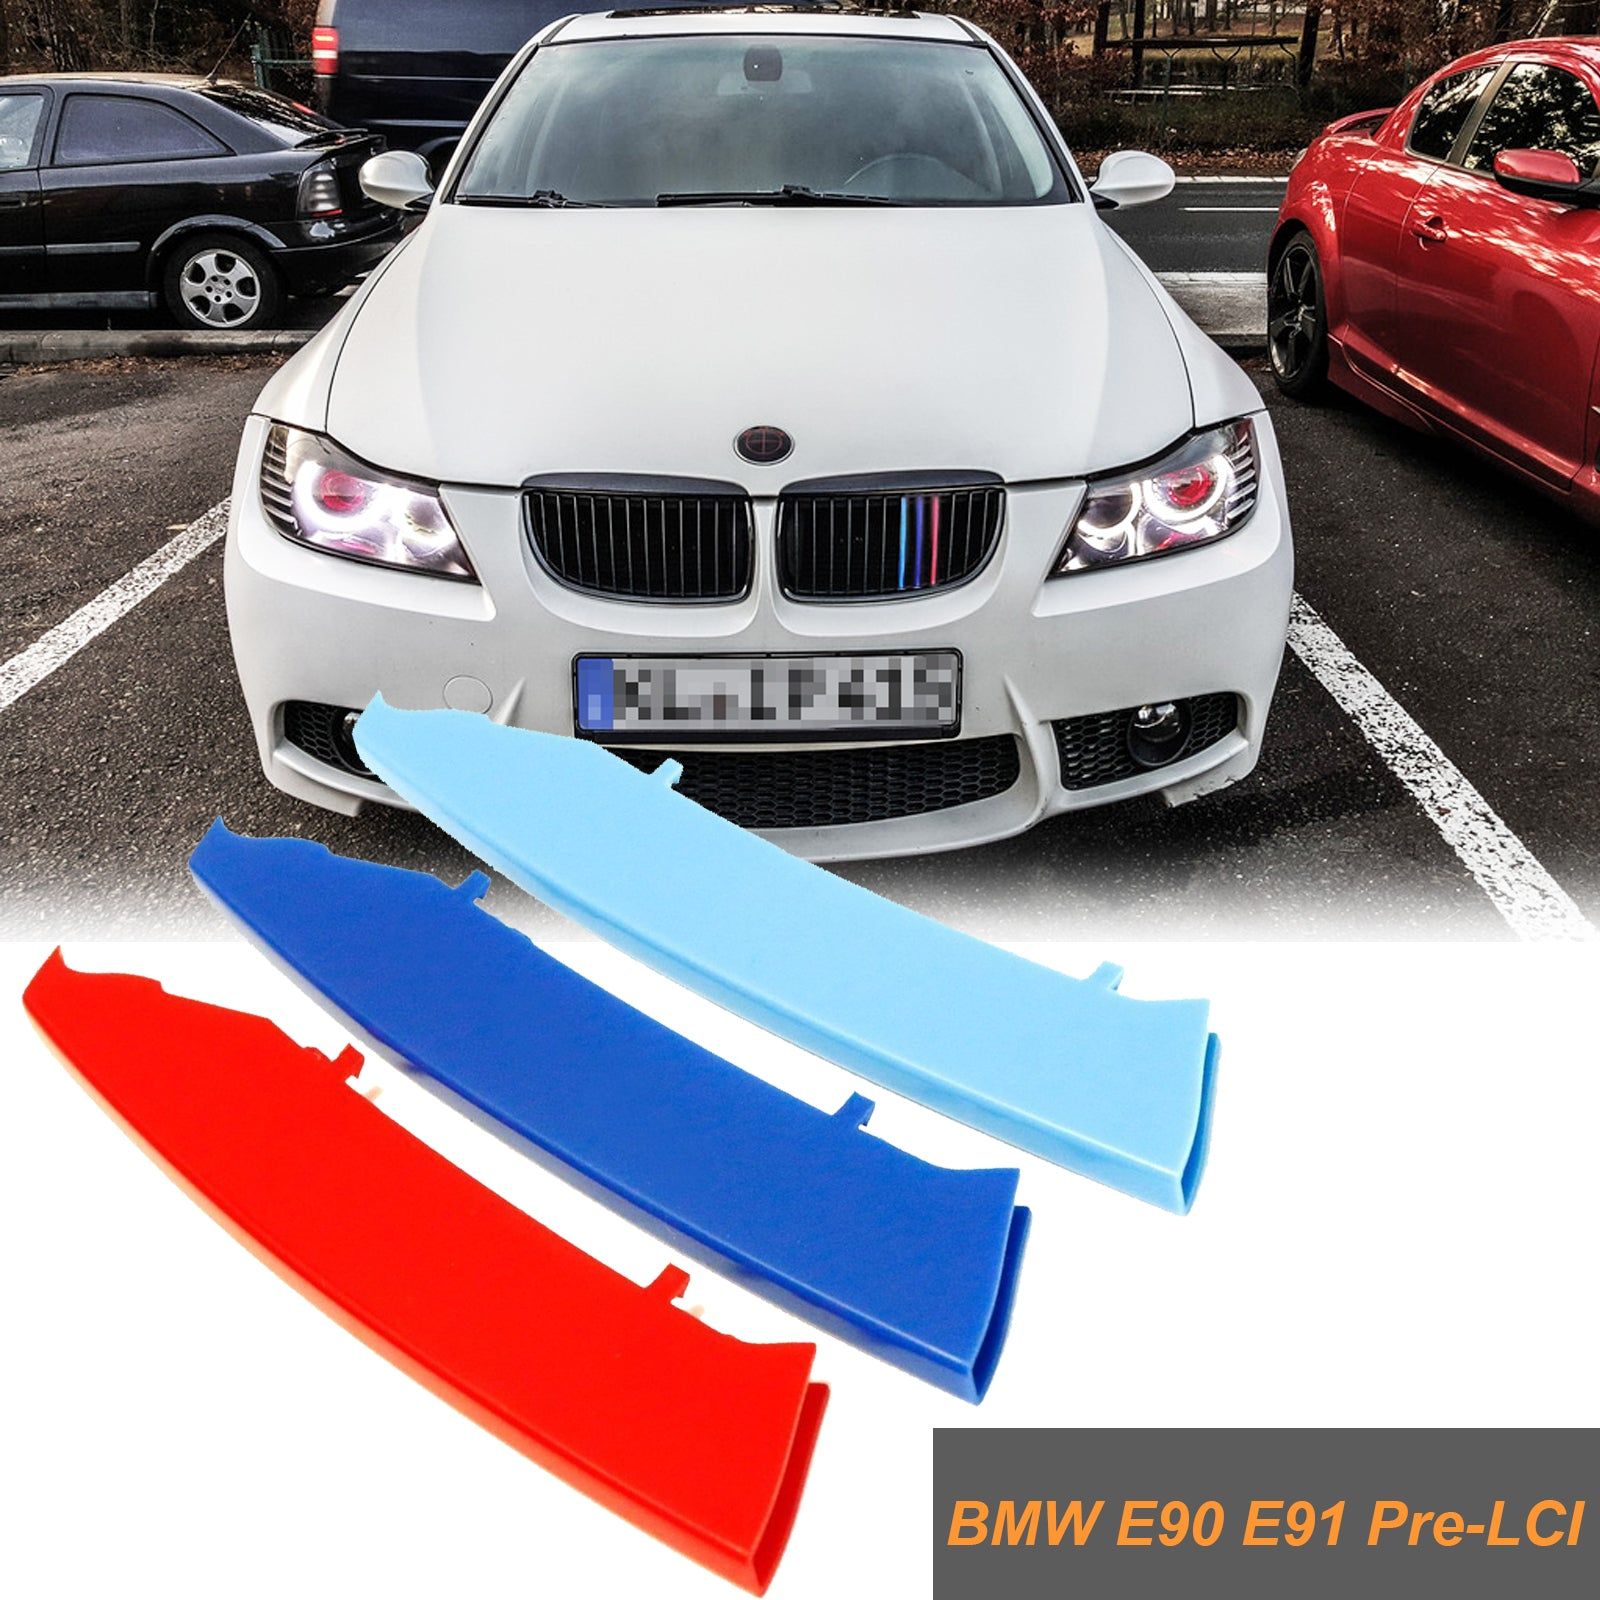 Front Grille Trim Strips Grill Cover Decoration for BMW 3 Series E90 2004 2005 2006 2007 2008 12 Grilles Inserts Kidney Grilles Hood Radiator Grill Stripes Decor 3 colours